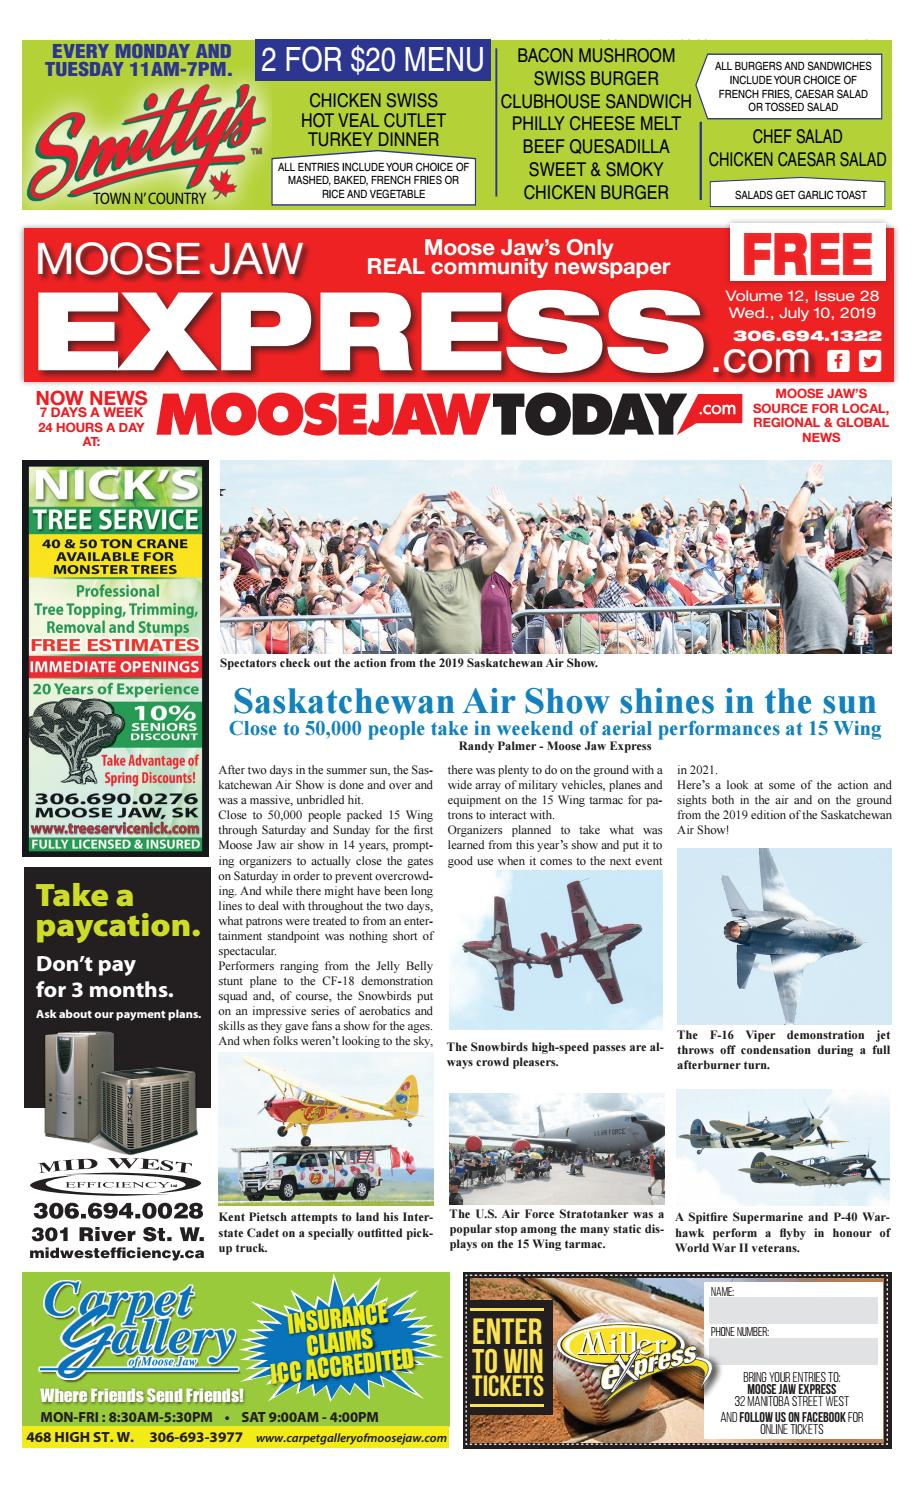 Moose Jaw Express July 10th, 2019 by Moose Jaw Express - issuu